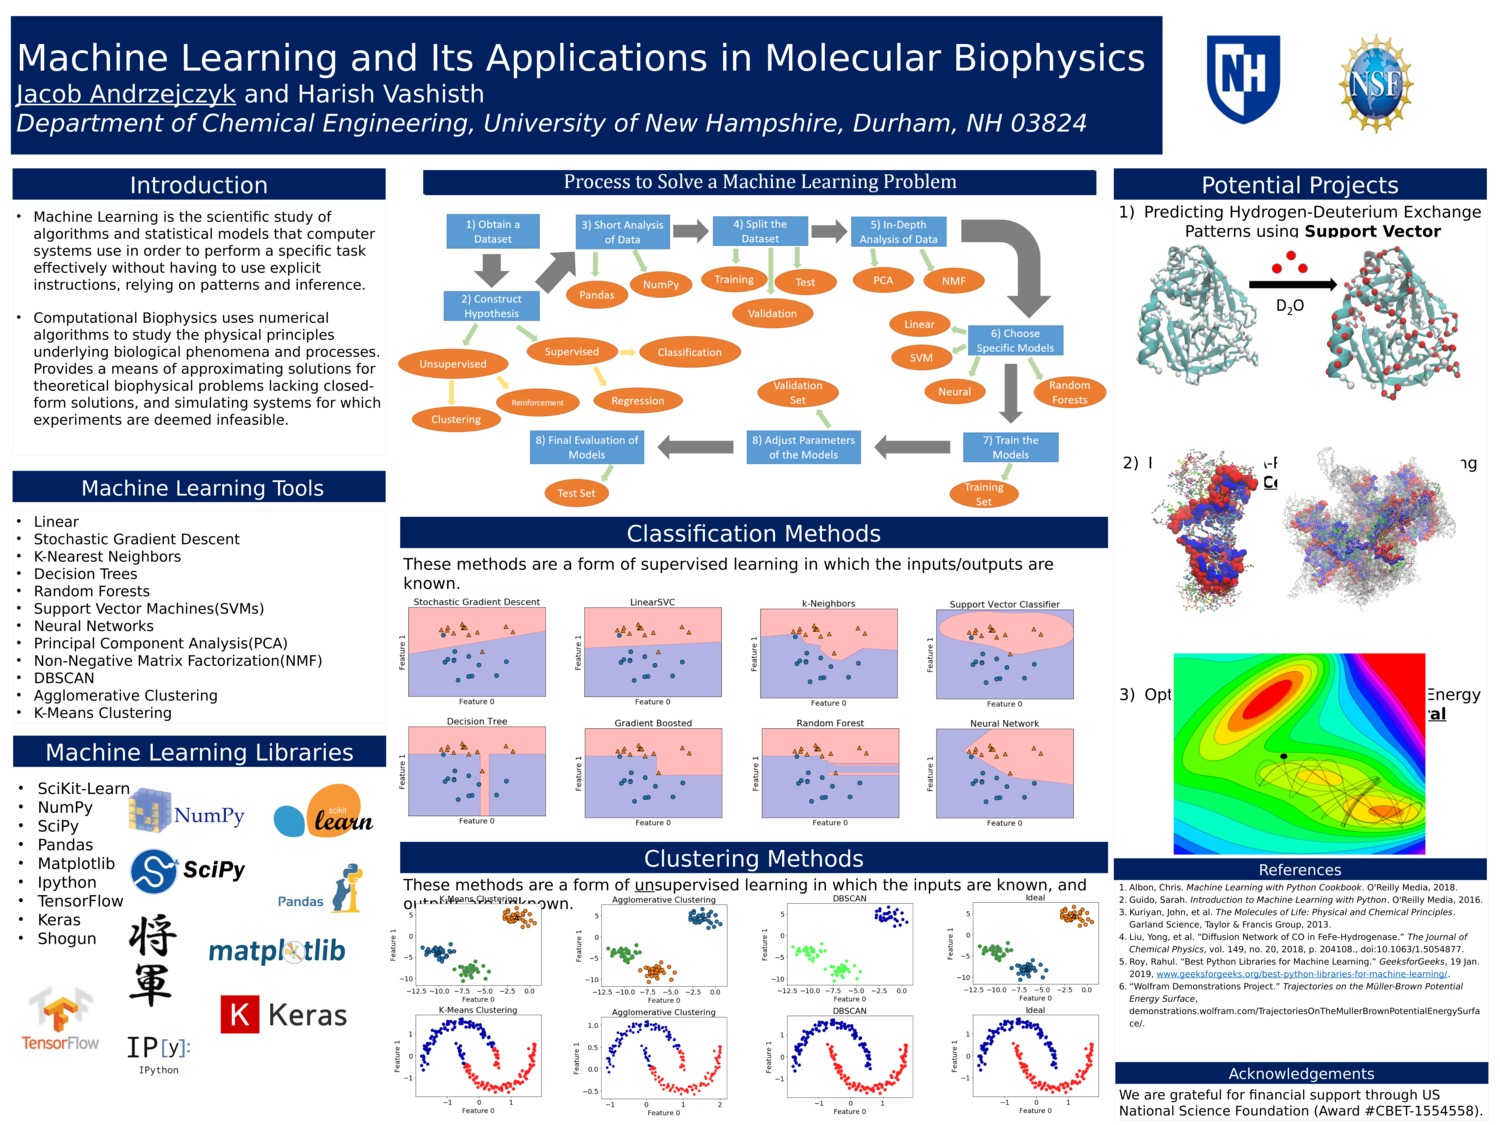 Machine Learning And Its Applications In Molecular Biophysics by joa1002